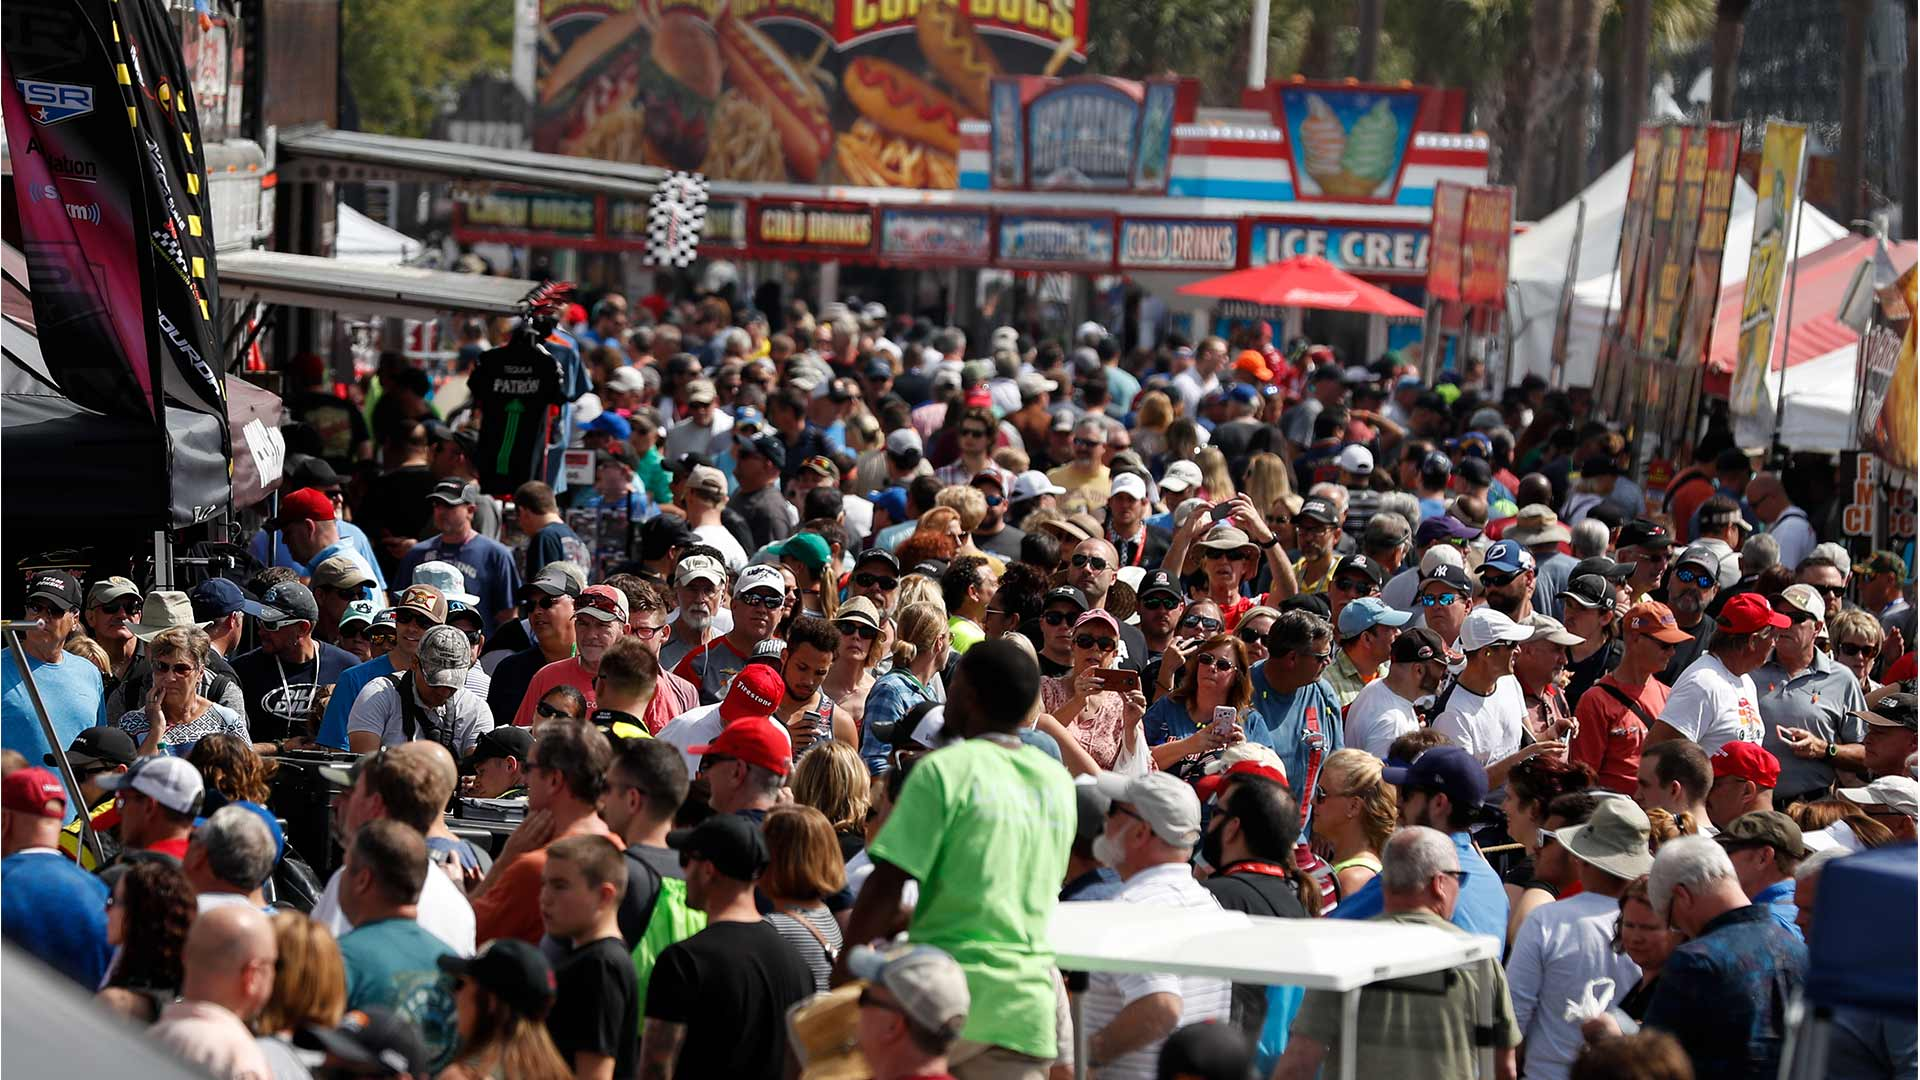 A busy crowd fills the event site